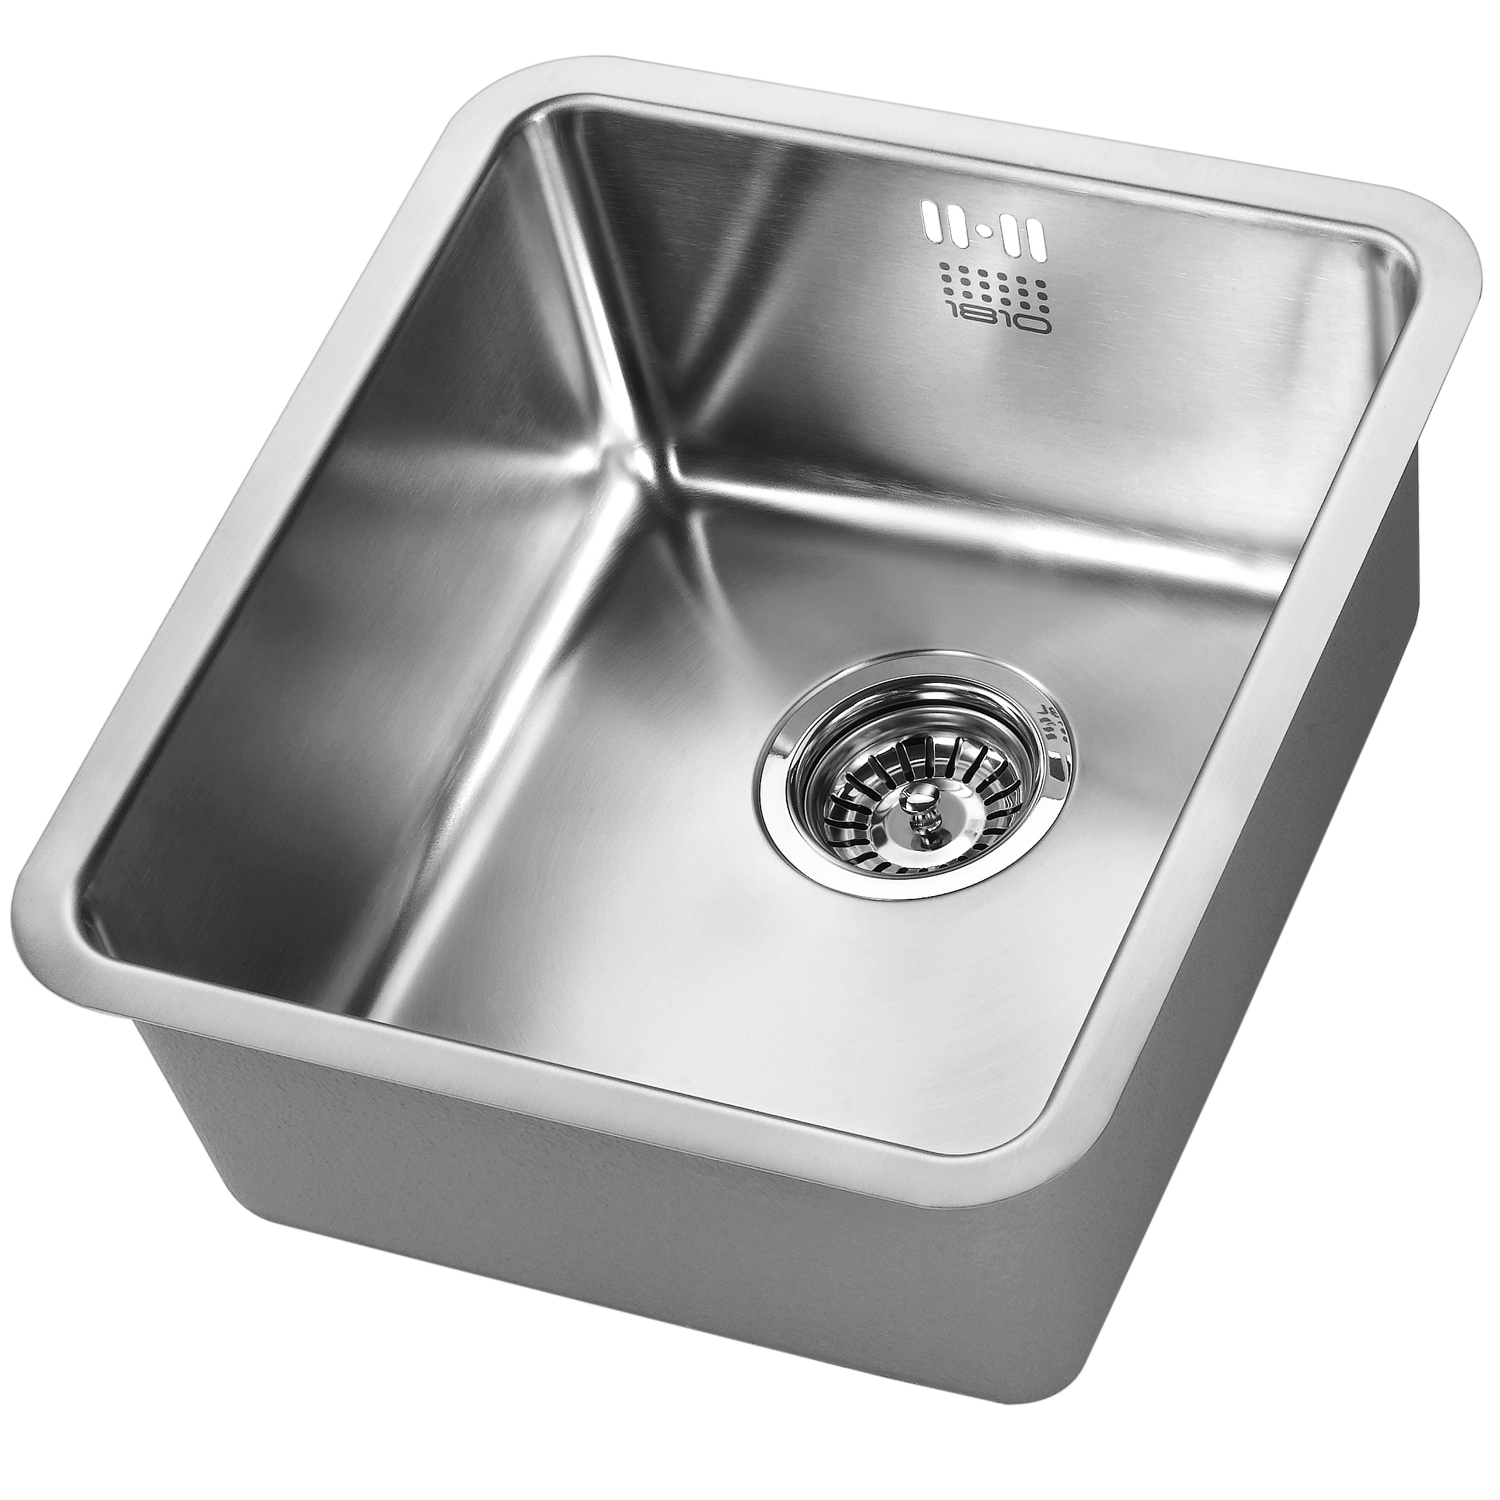 The 1810 Company Luxsouno25 340U 1.0 Bowl Kitchen Sink - Stainless Steel-0